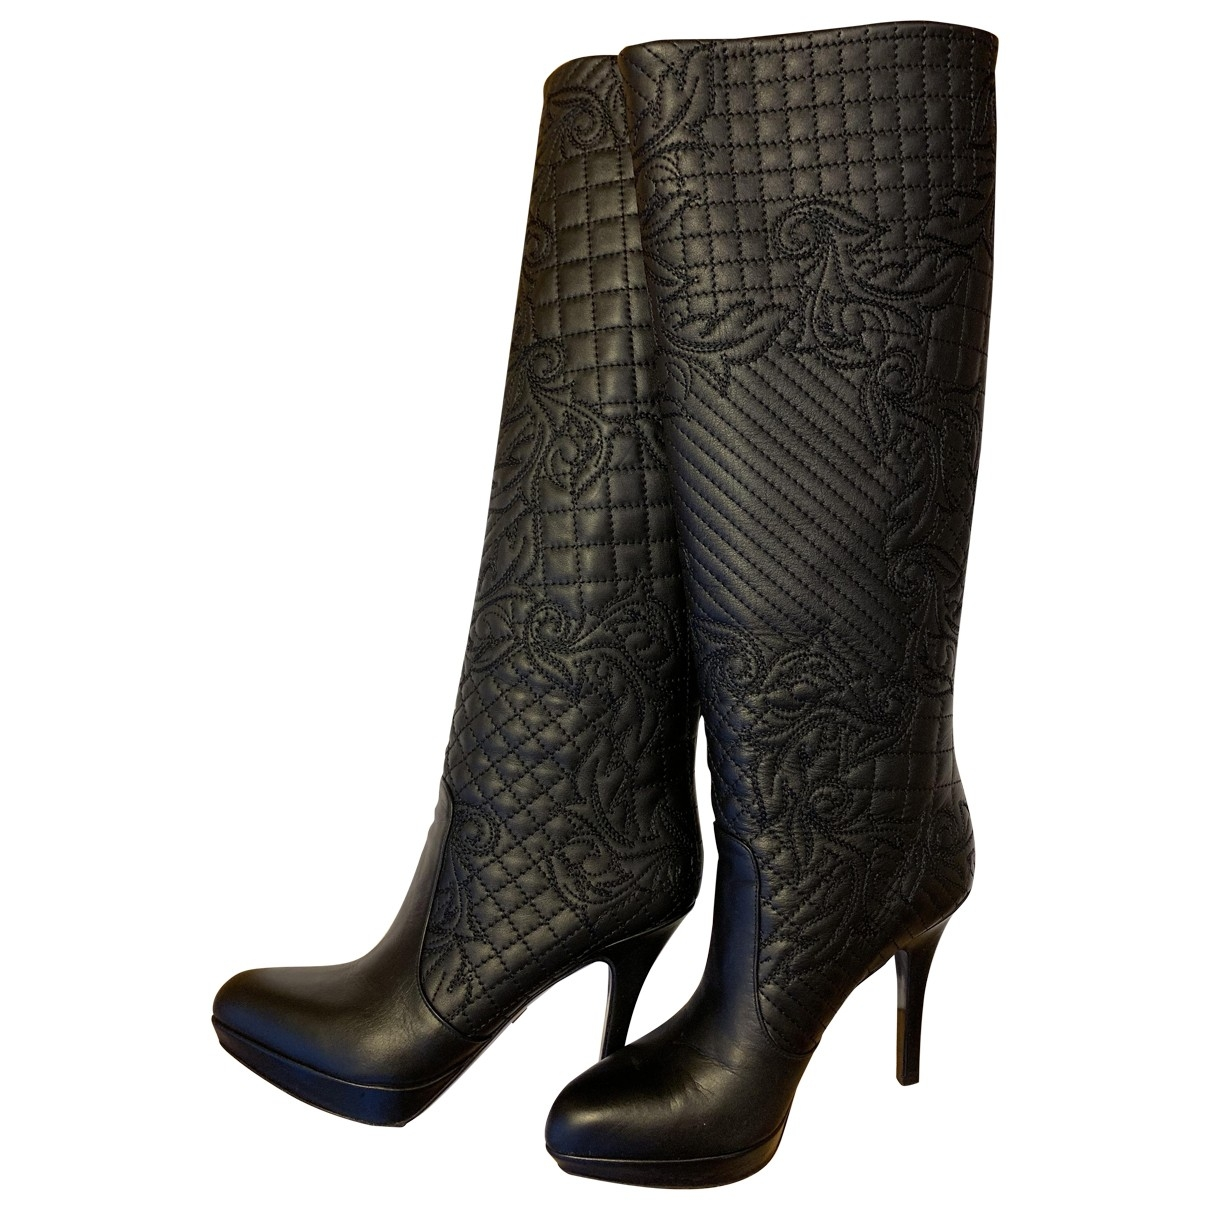 Gianni Versace \N Black Leather Boots for Women 36.5 EU